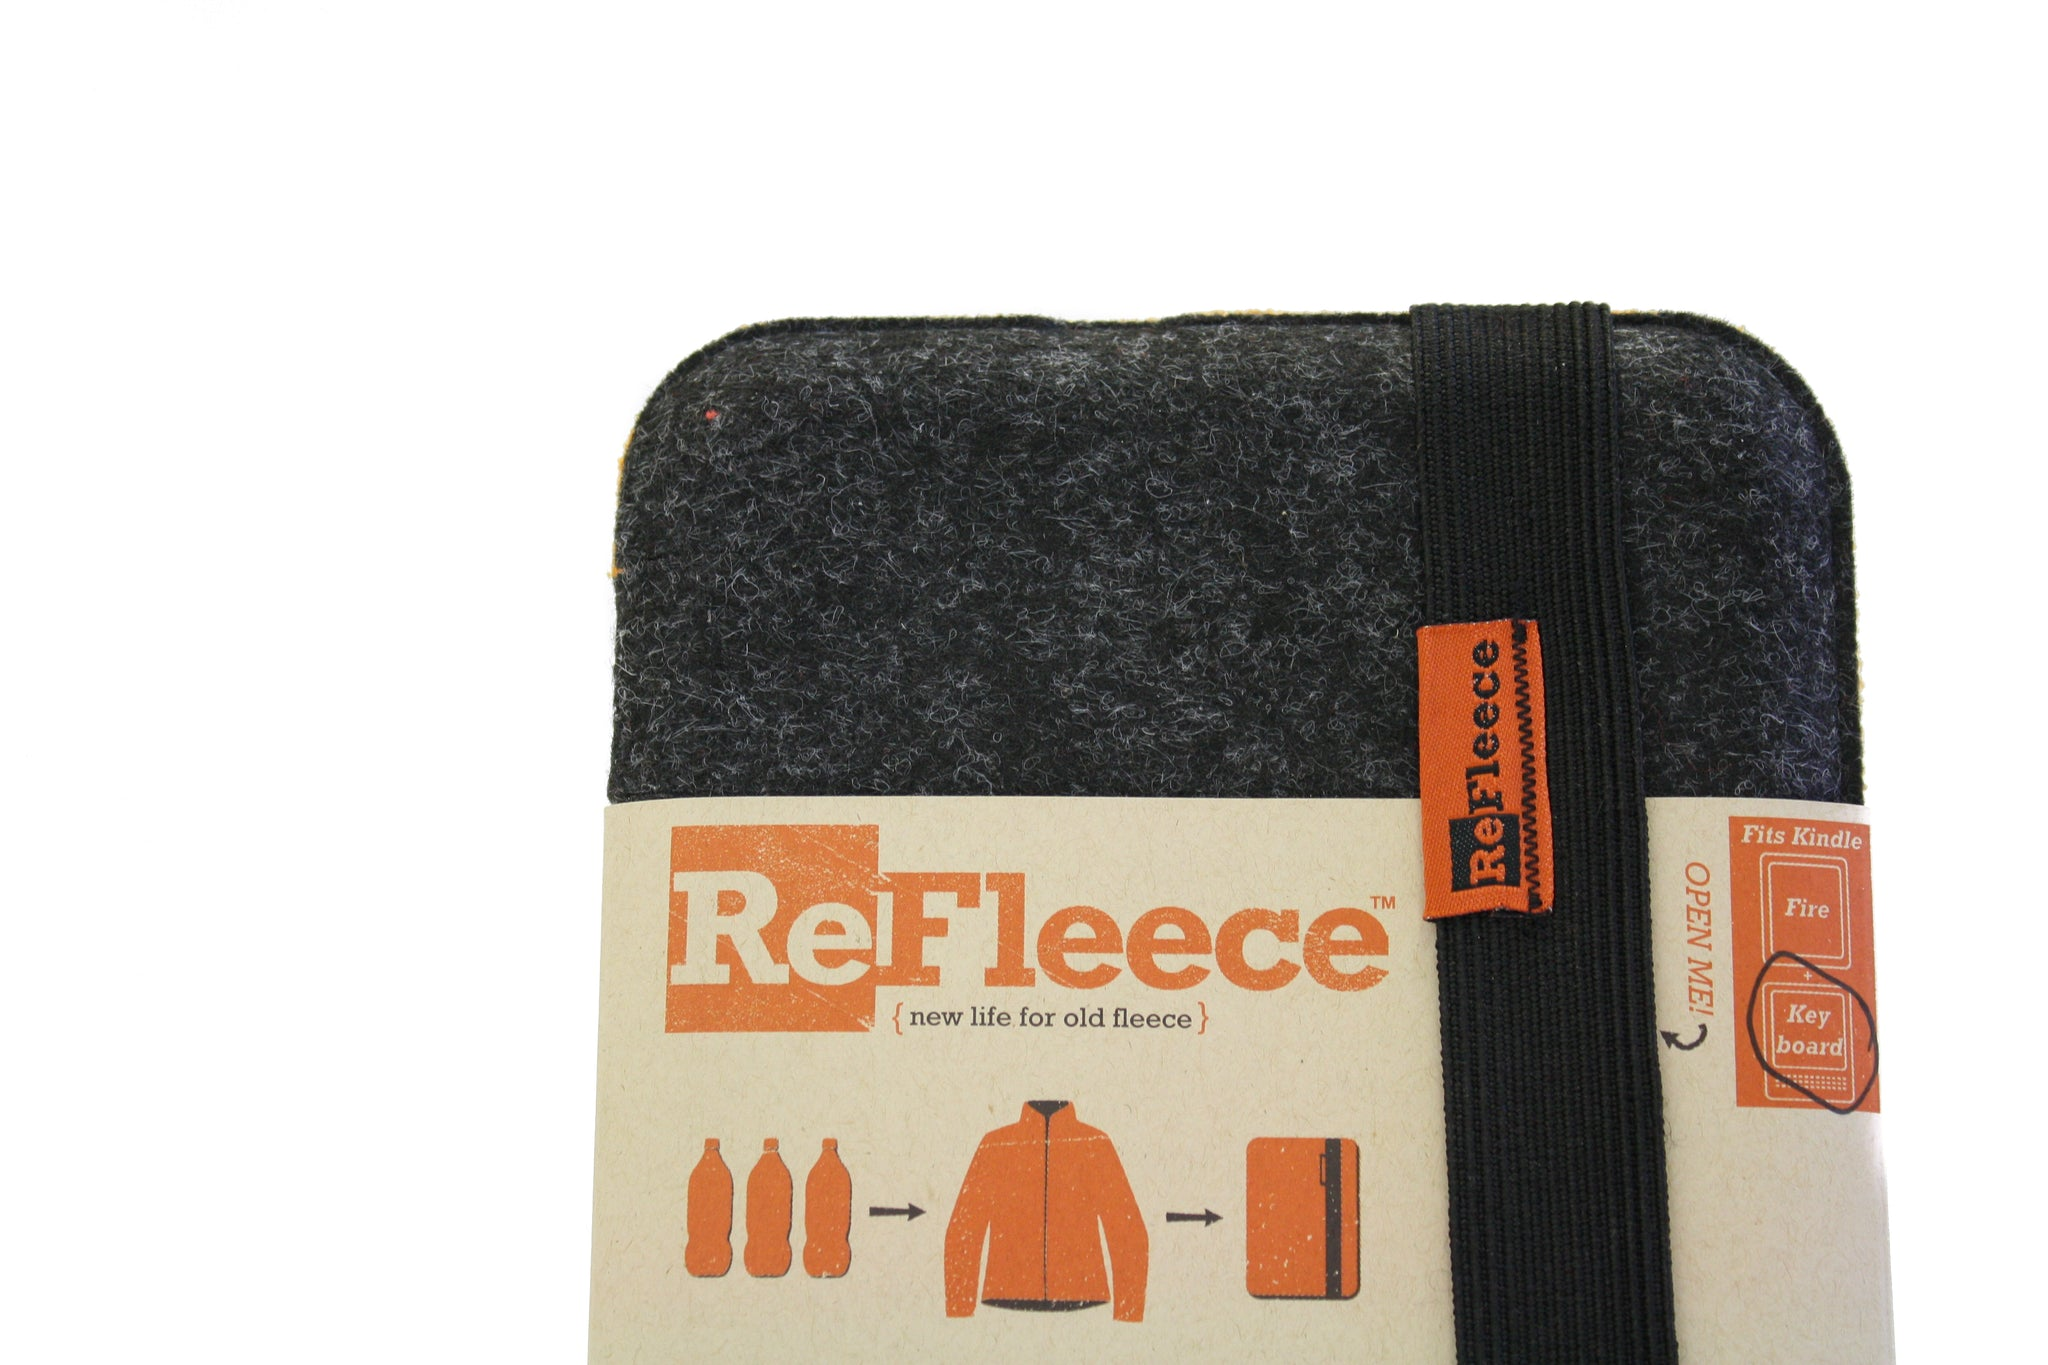 ReFleece E-Reader Case - for Kindle Paperwhite or Kobo Touch 6.75""